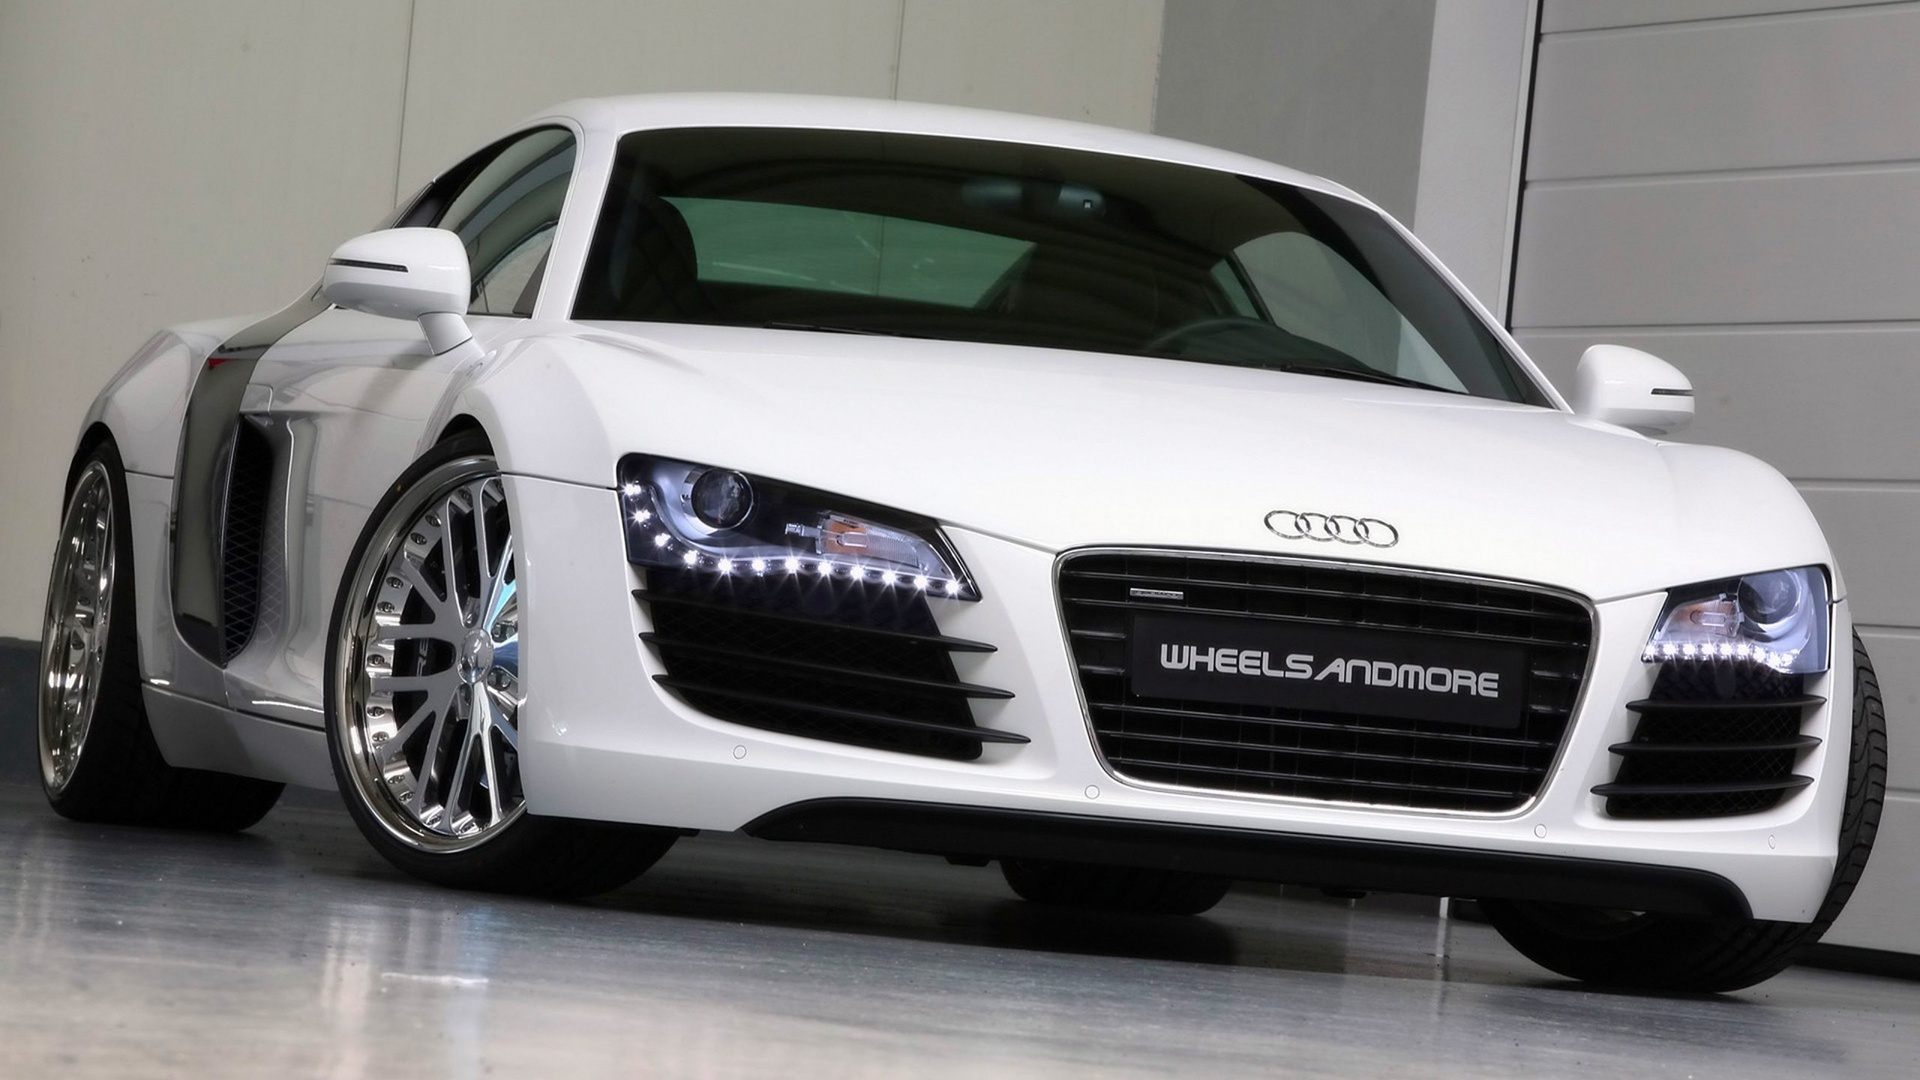 Are You Looking For Servicing Audi Vehicles Blogs - Audi vehicles